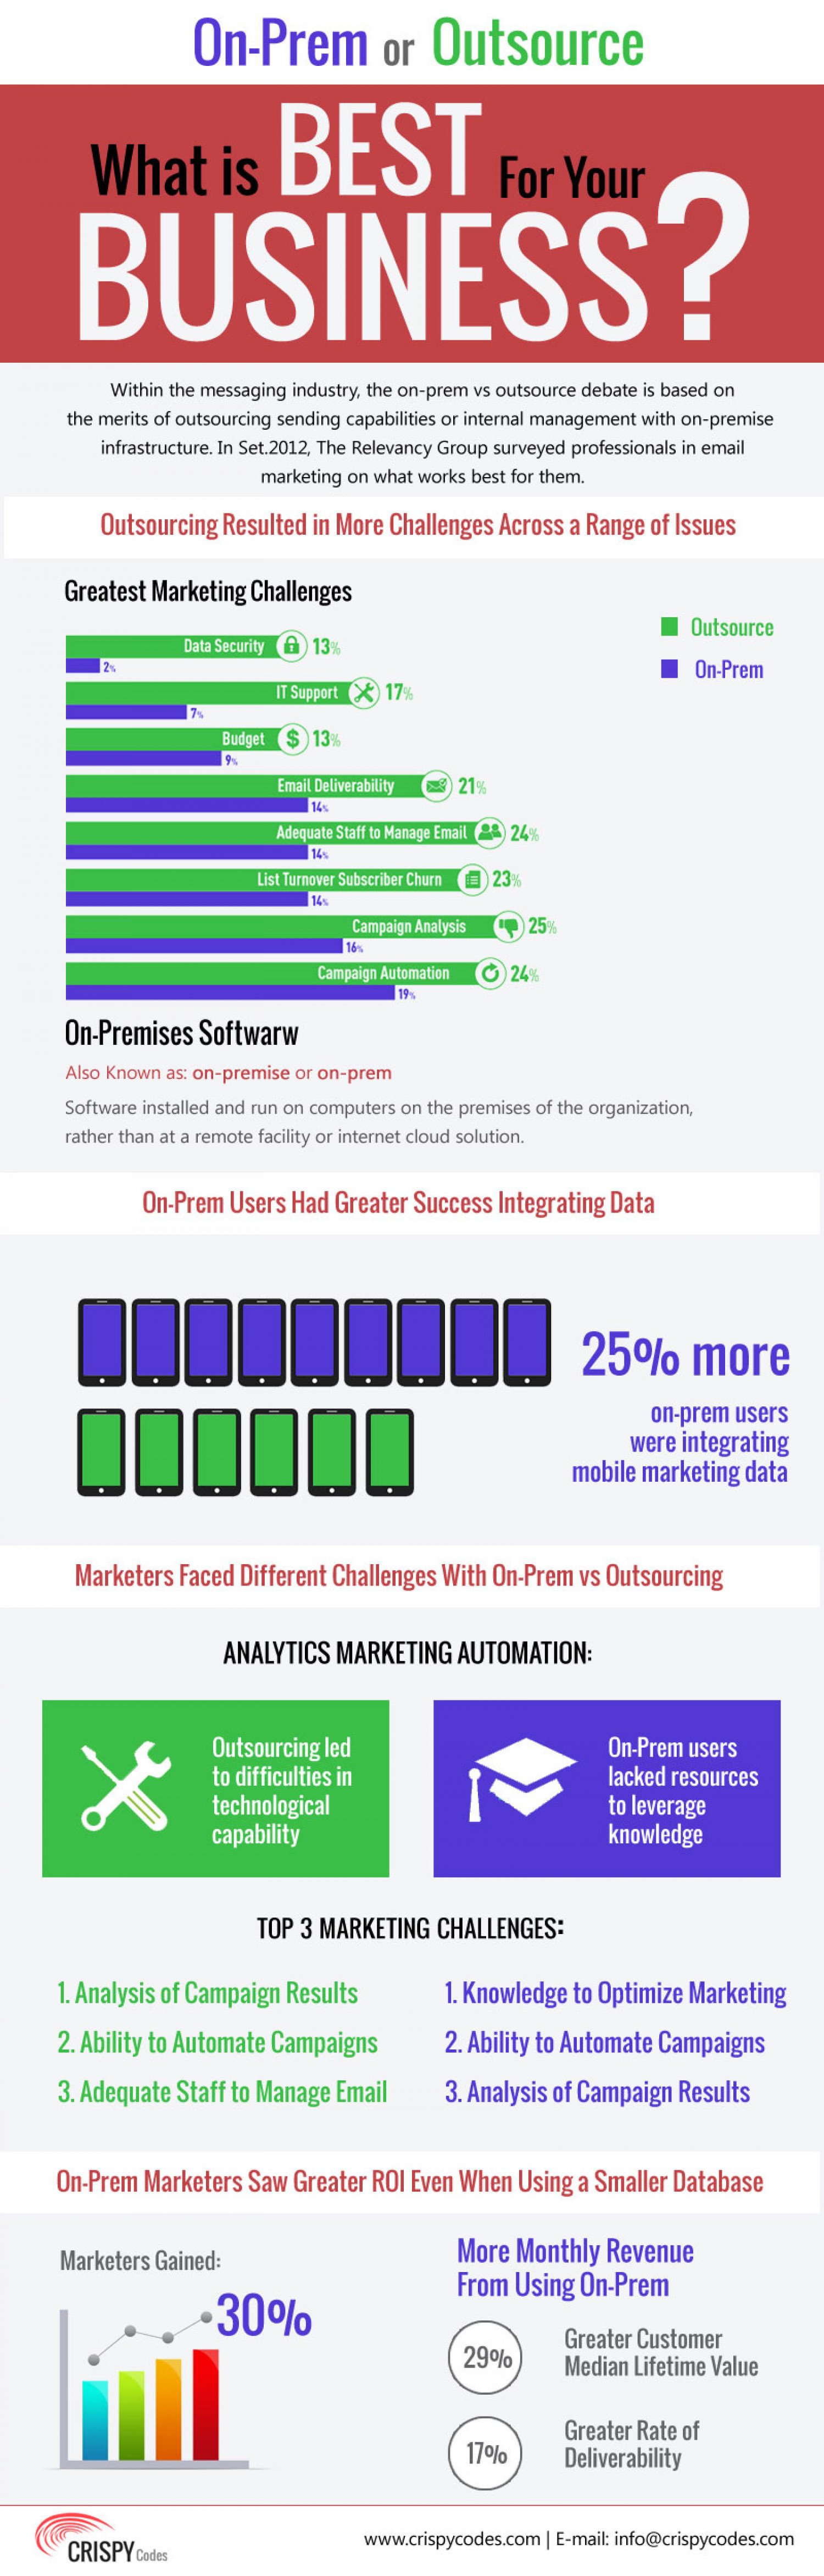 On-Prem or Outsource Infographic